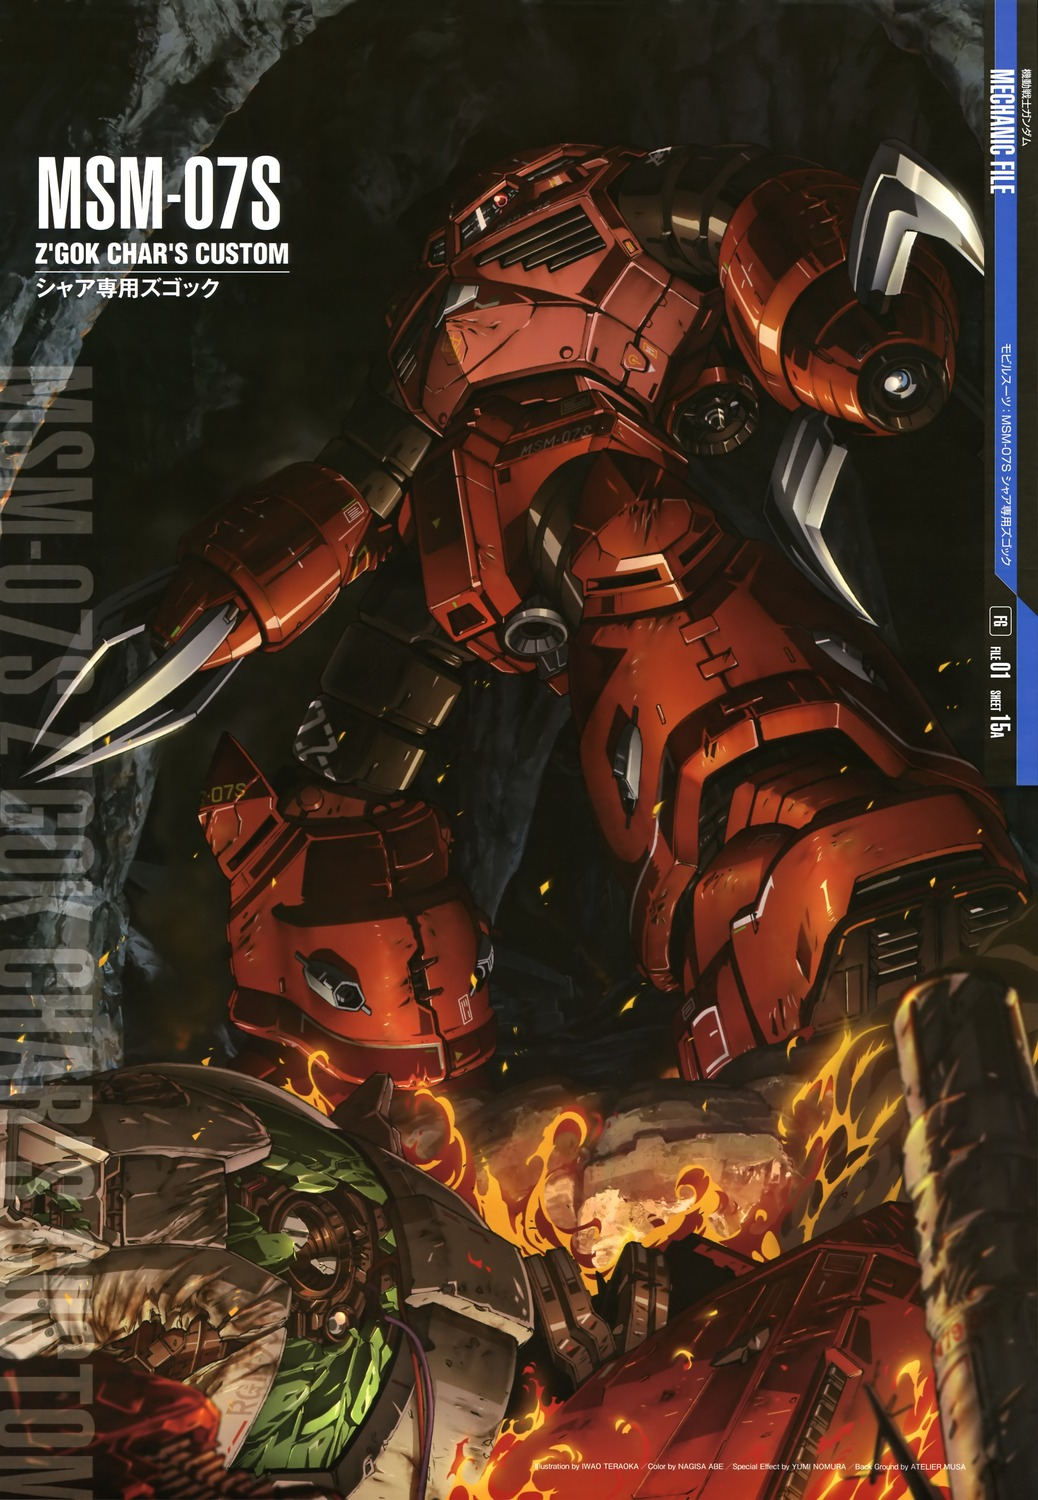 Gundam Mechanic File Posters Gundam Kits Collection News